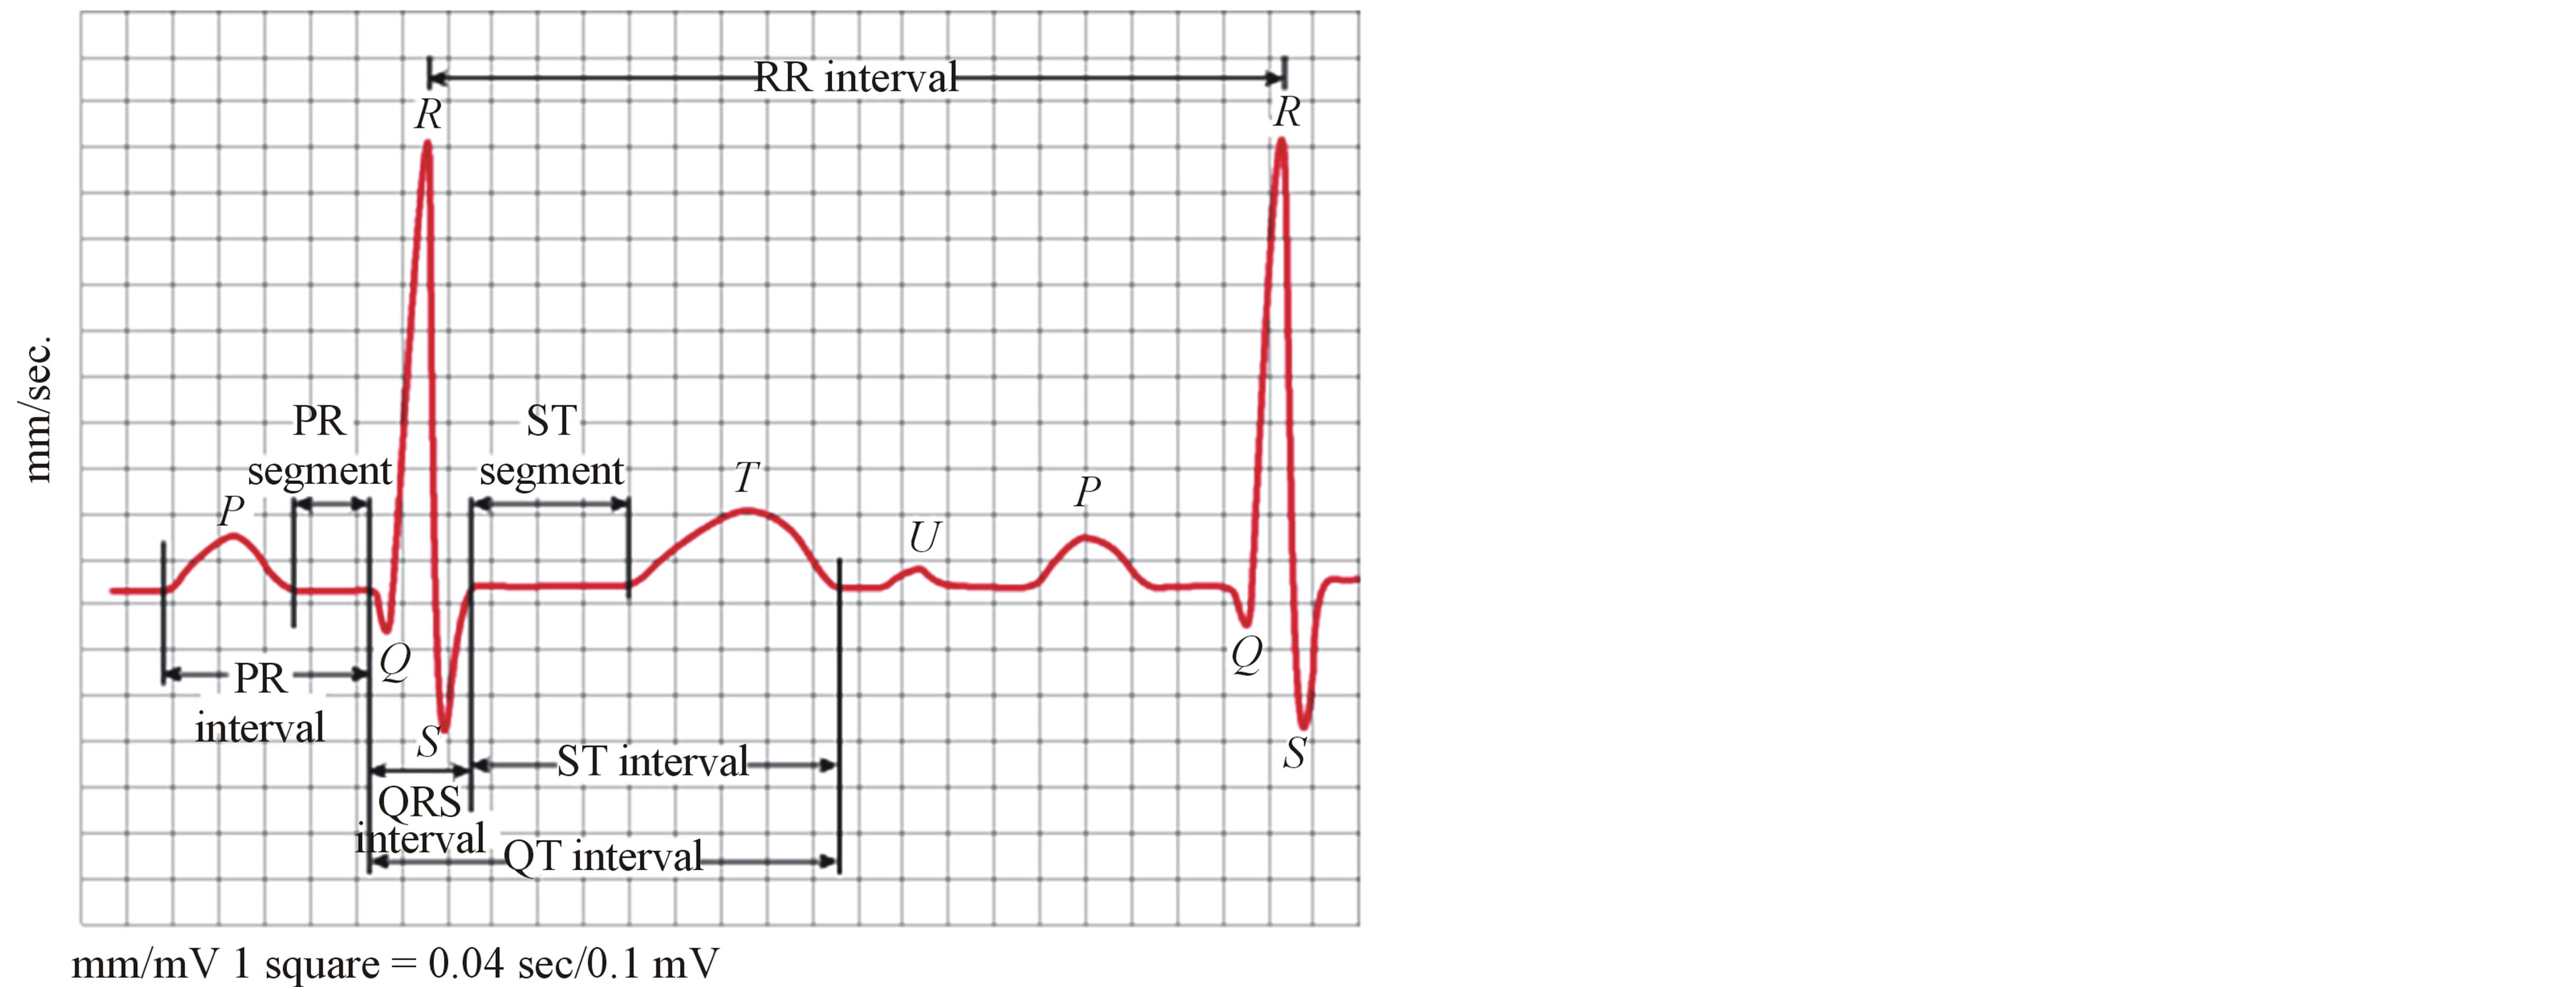 Compression Of Ecg Signals Based On Dwt And Exploiting The Correlation Between Ecg Signal Samples